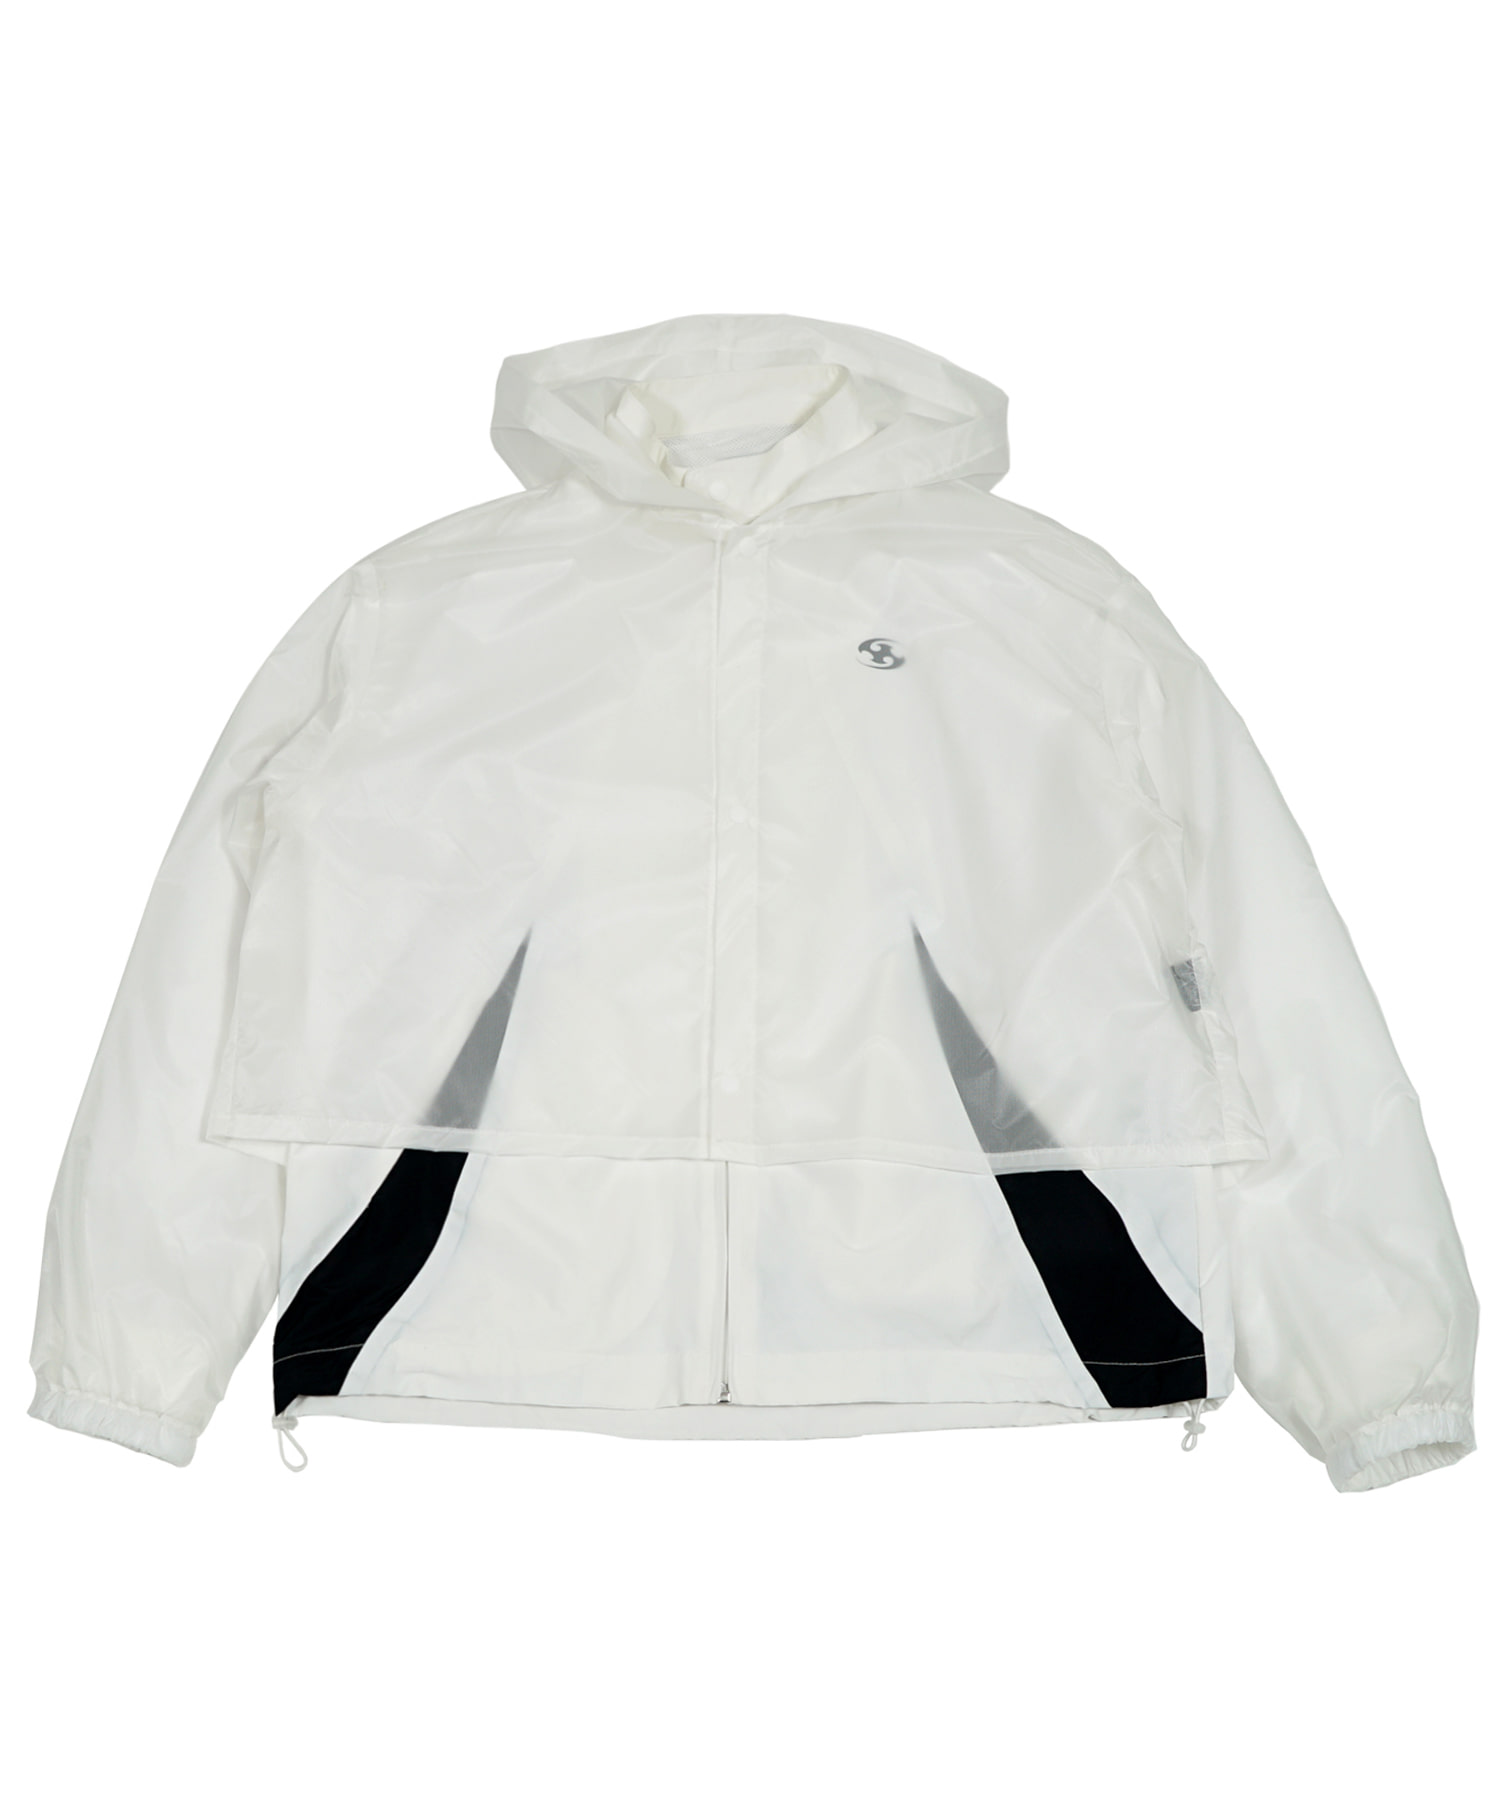 TRACK JACKET w/ RAIN COVER WHITE